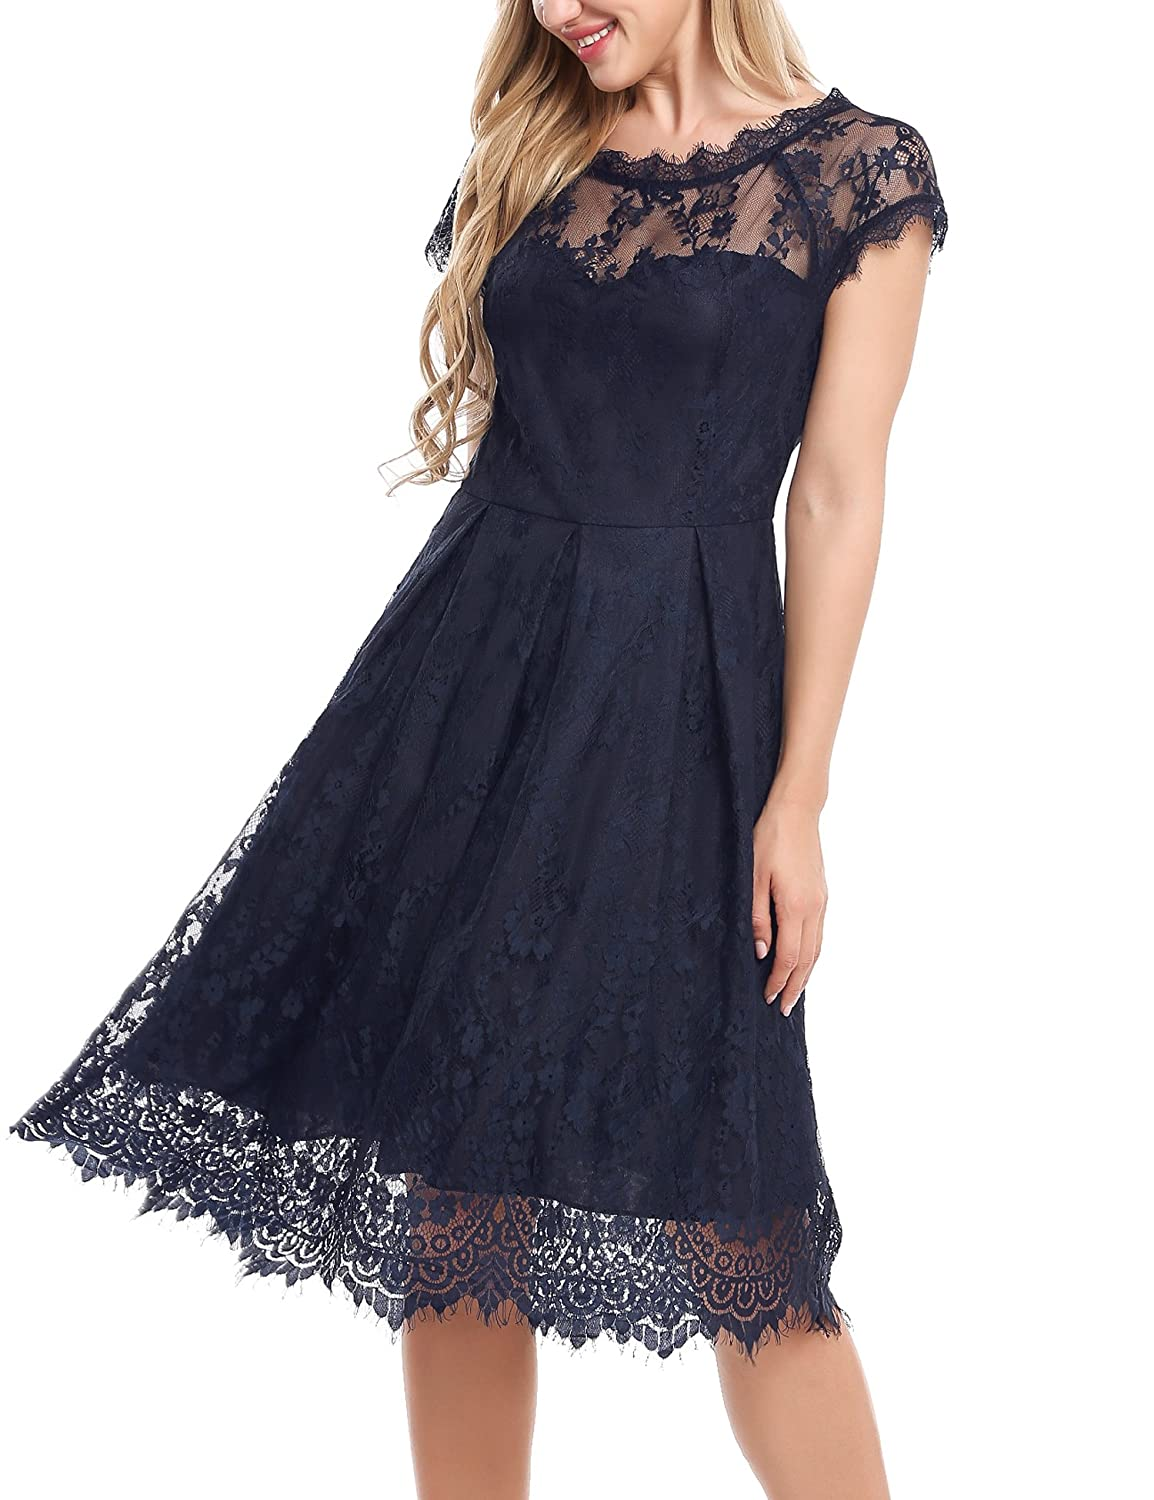 5bfd03ef8766 Design:Cap Sleeve Sheer Lace,A-Line Pleated Hem,Knee Length Lace Hollow  Out,Back See-through. Floral Lace Dress Which Can be ...